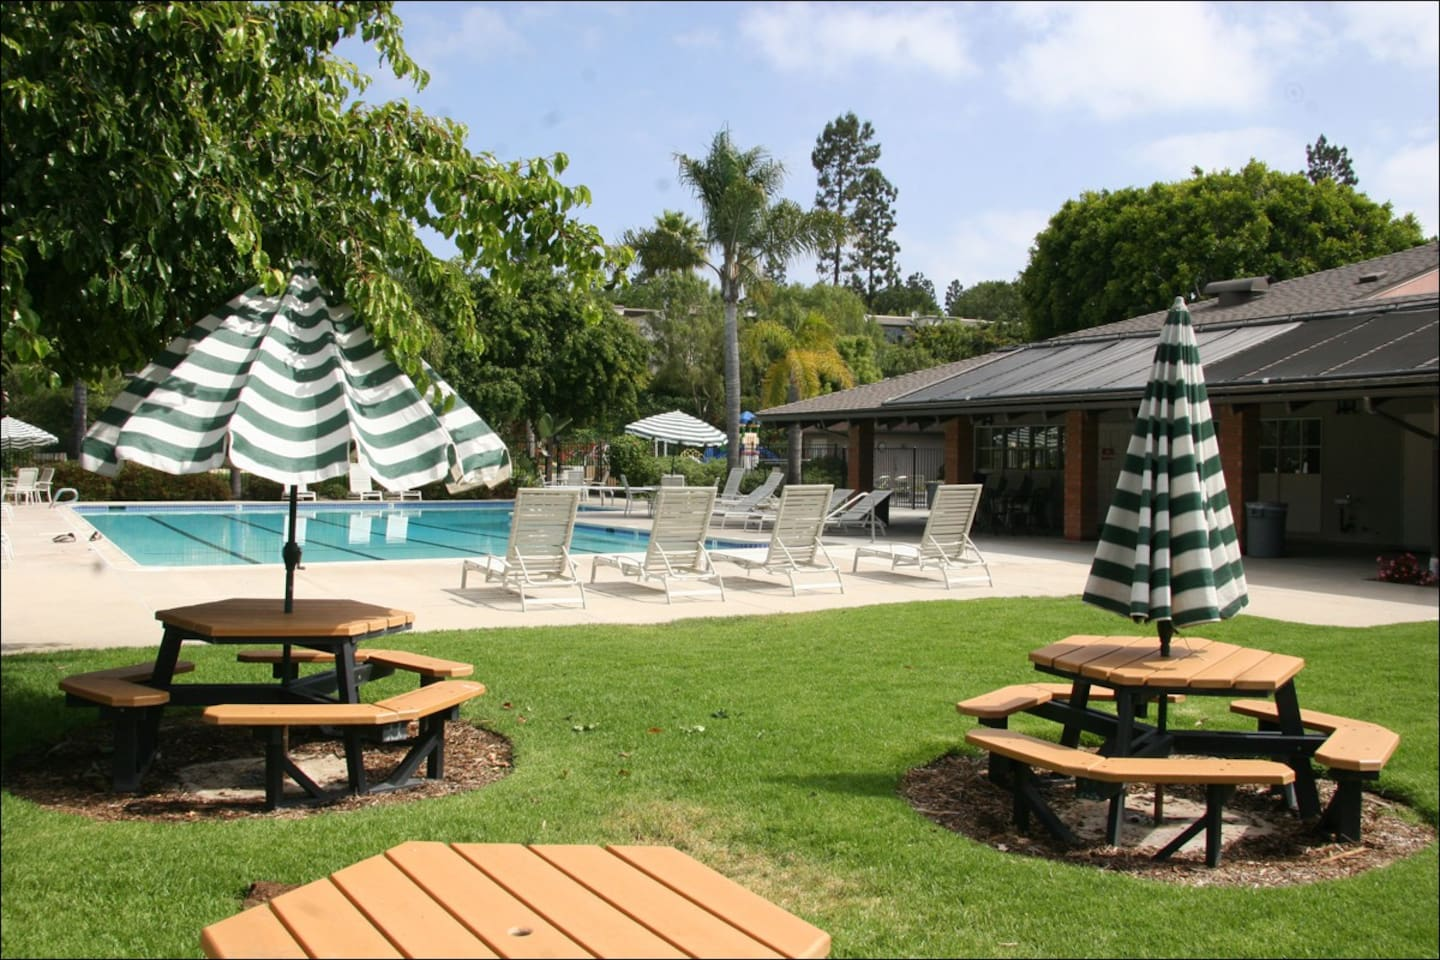 Pool Area - one of the clubhouse  features